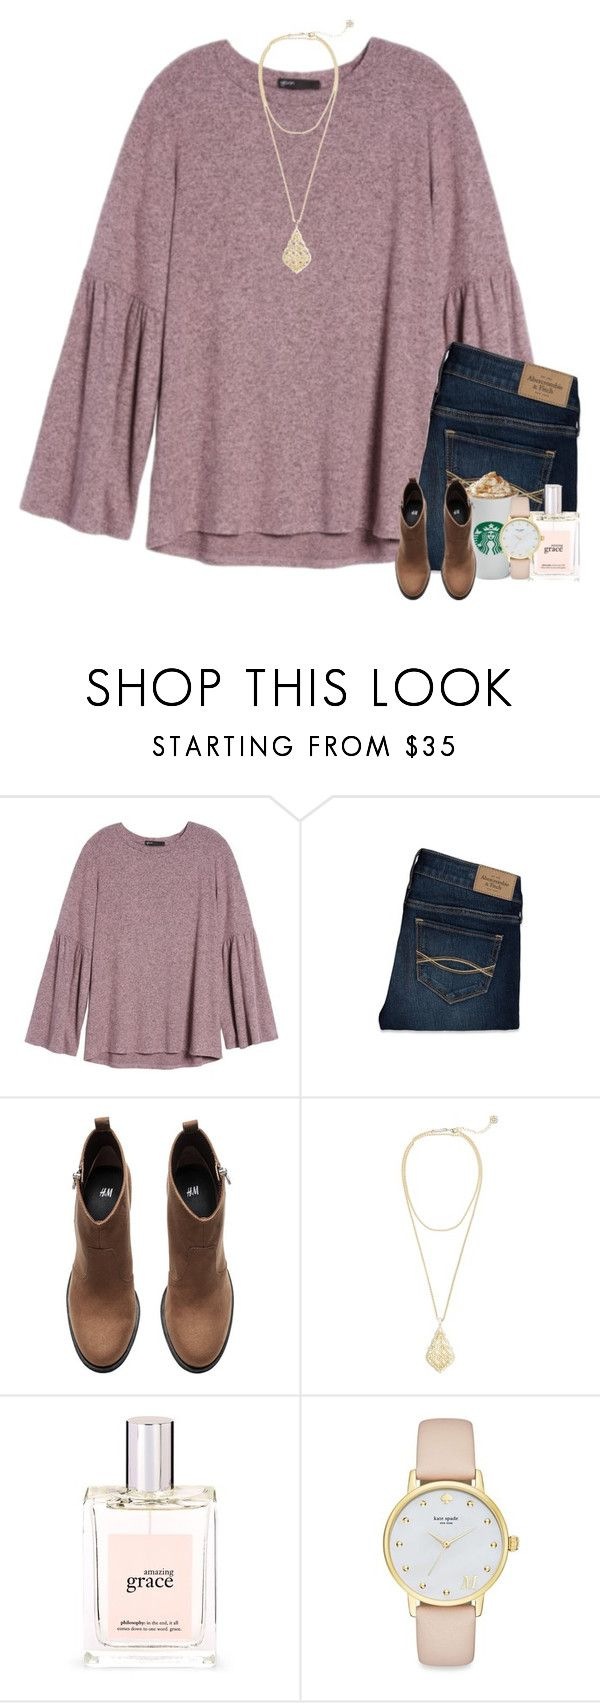 """""""woman are considered fragile..."""" by worthyofgrace ❤ liked on Polyvore featuring Gibson, Abercrombie & Fitch, H&M, Kendra Scott, philosophy and Kate Spade"""